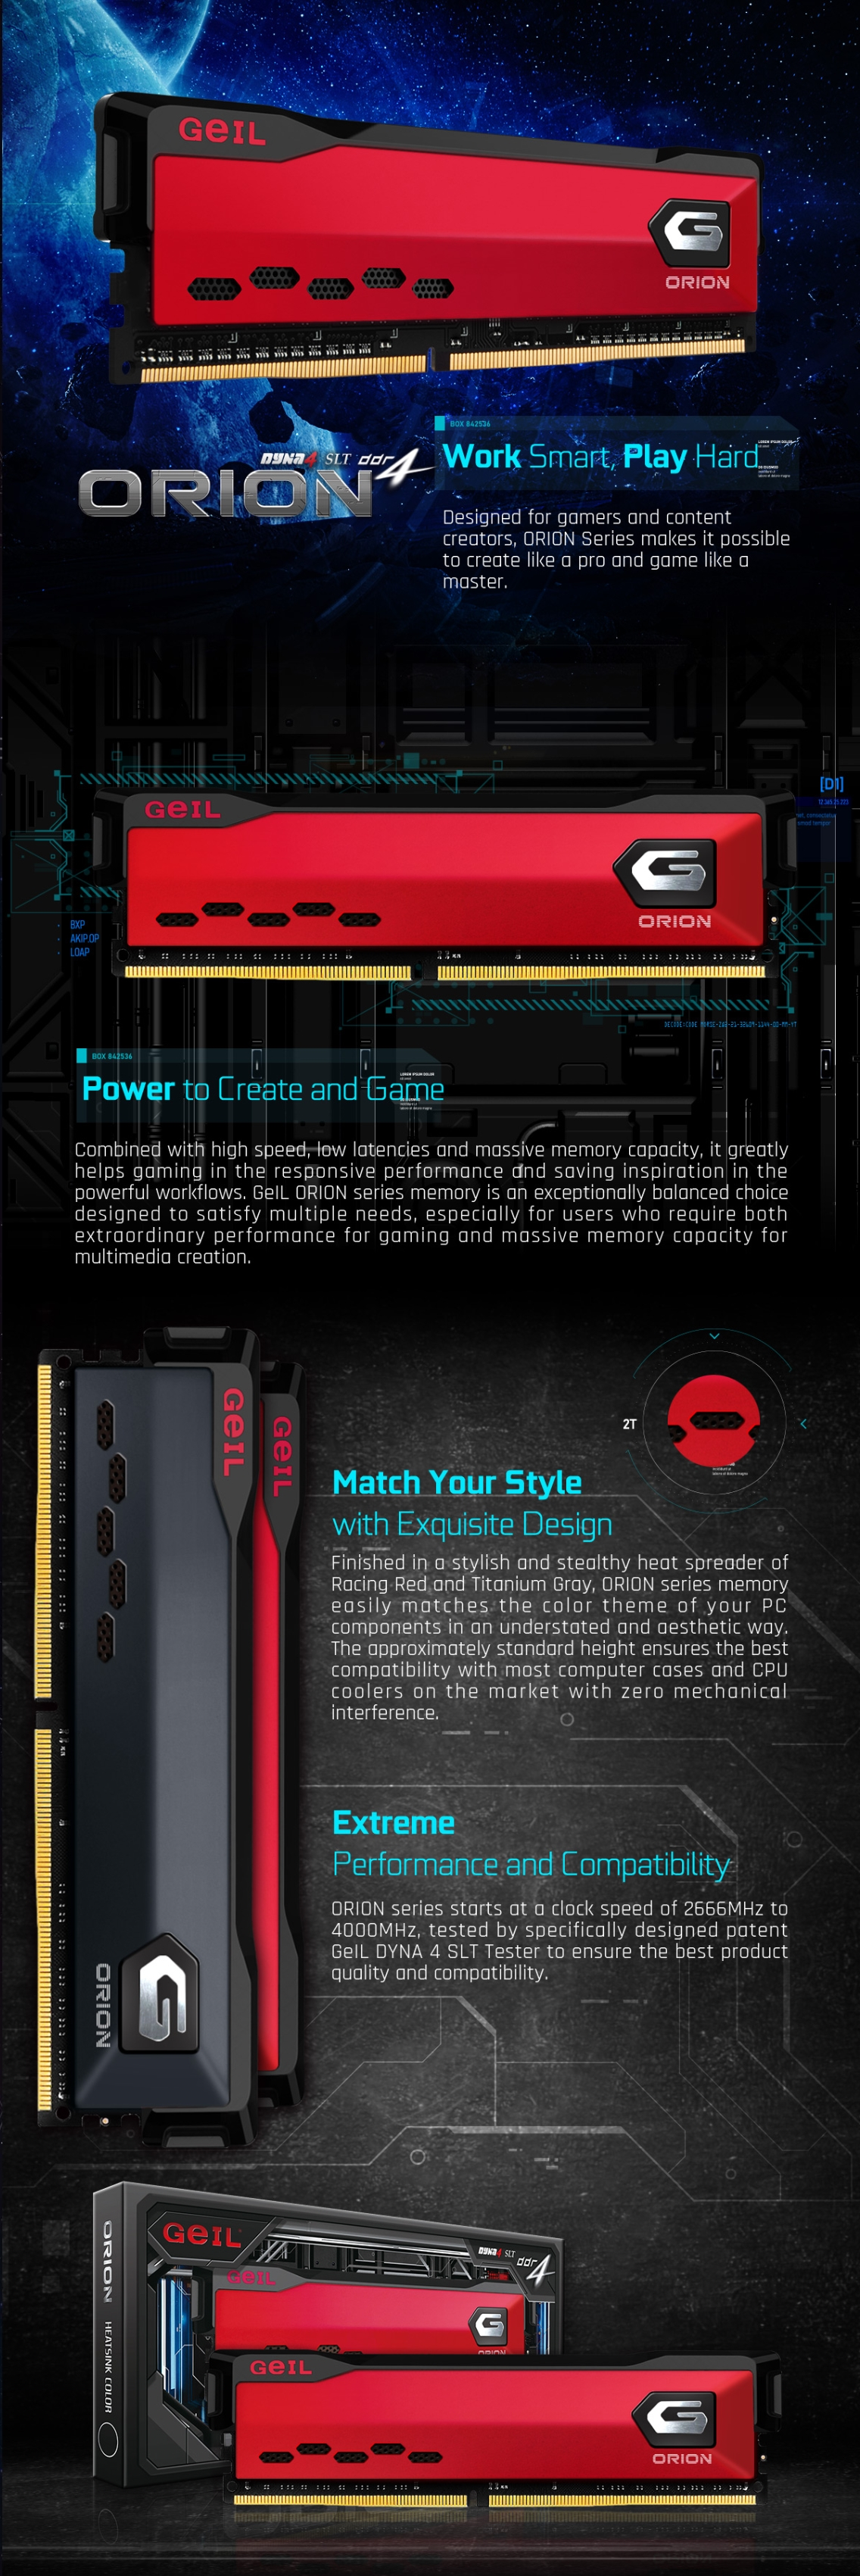 A large marketing image providing additional information about the product GeIL 16GB Kit (2x8GB) DDR4 Orion Rust Red C16 3000Mhz - Additional alt info not provided